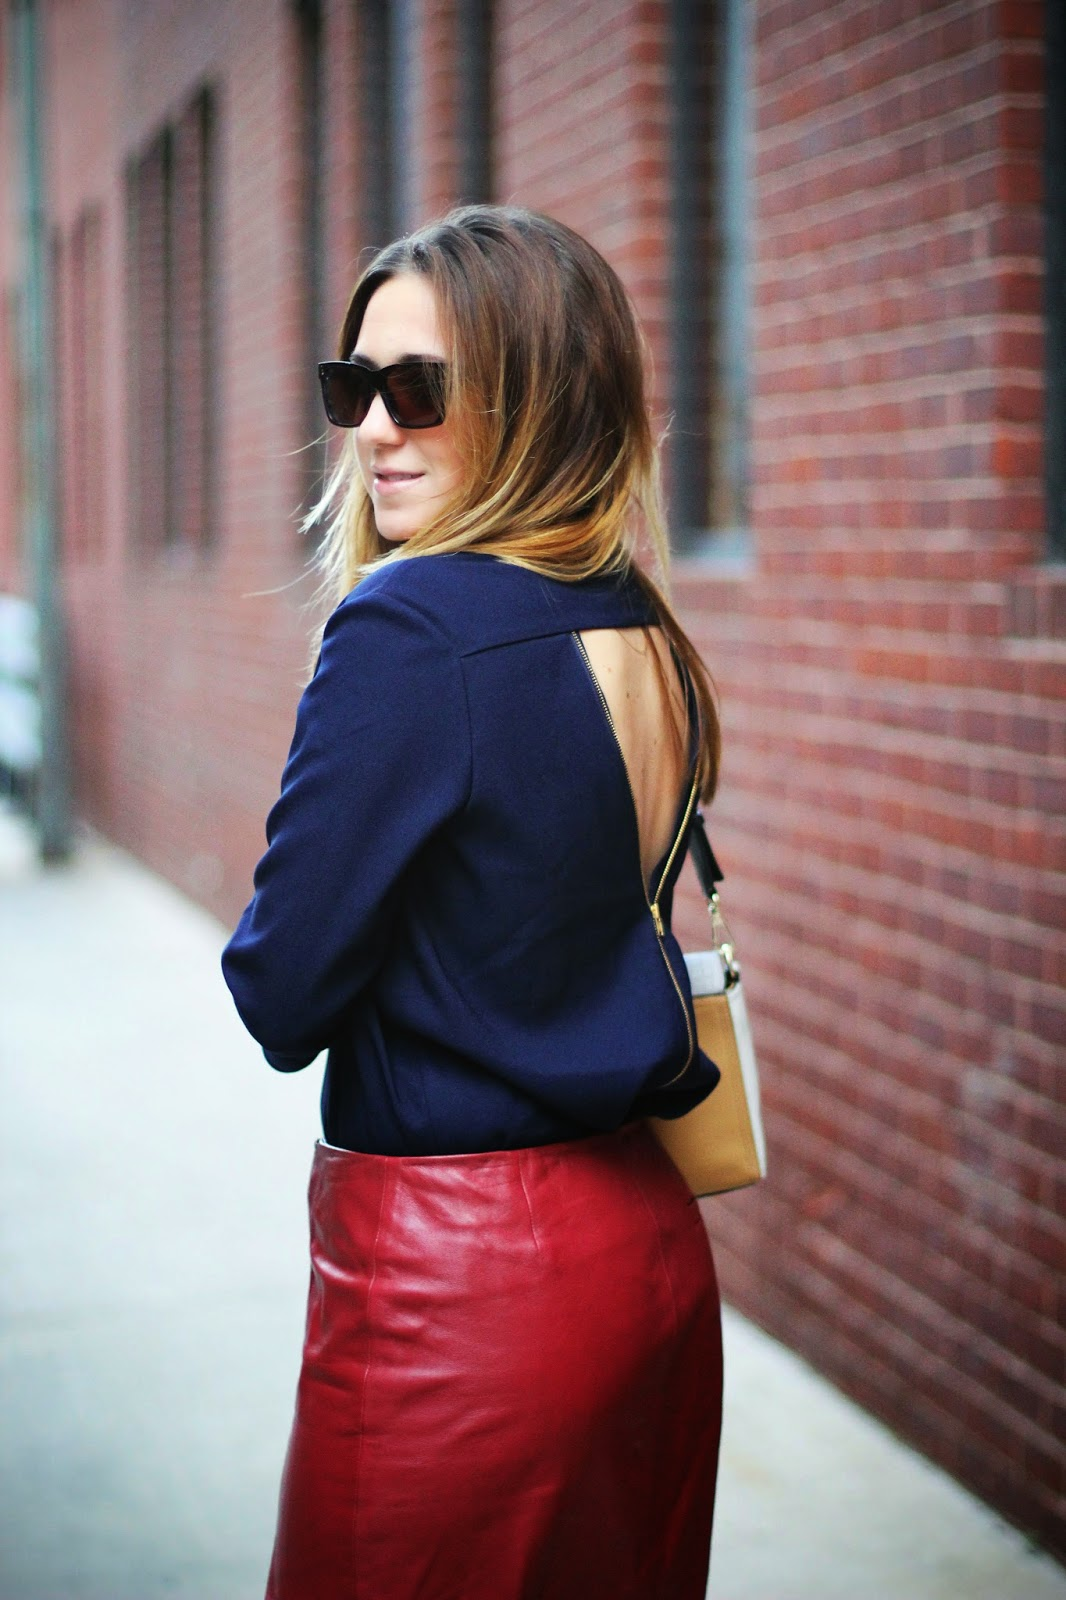 lace up pumps, YSL, cooper, ella, blouses, woman, dc, style, blog, leather skirt